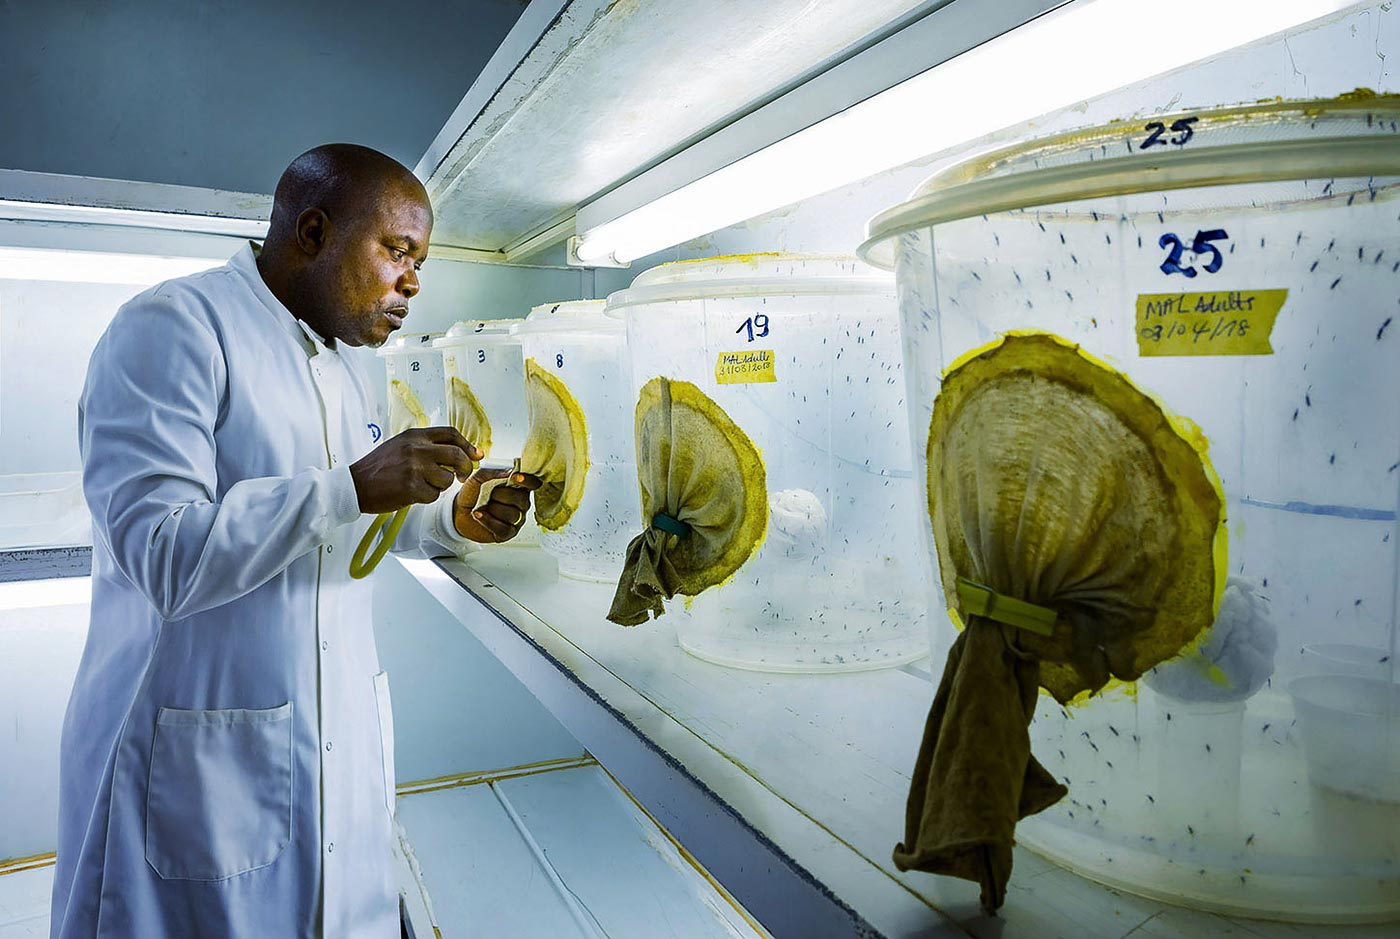 Research scientist with test subject mosquitoes at research facility - corporate photography collection